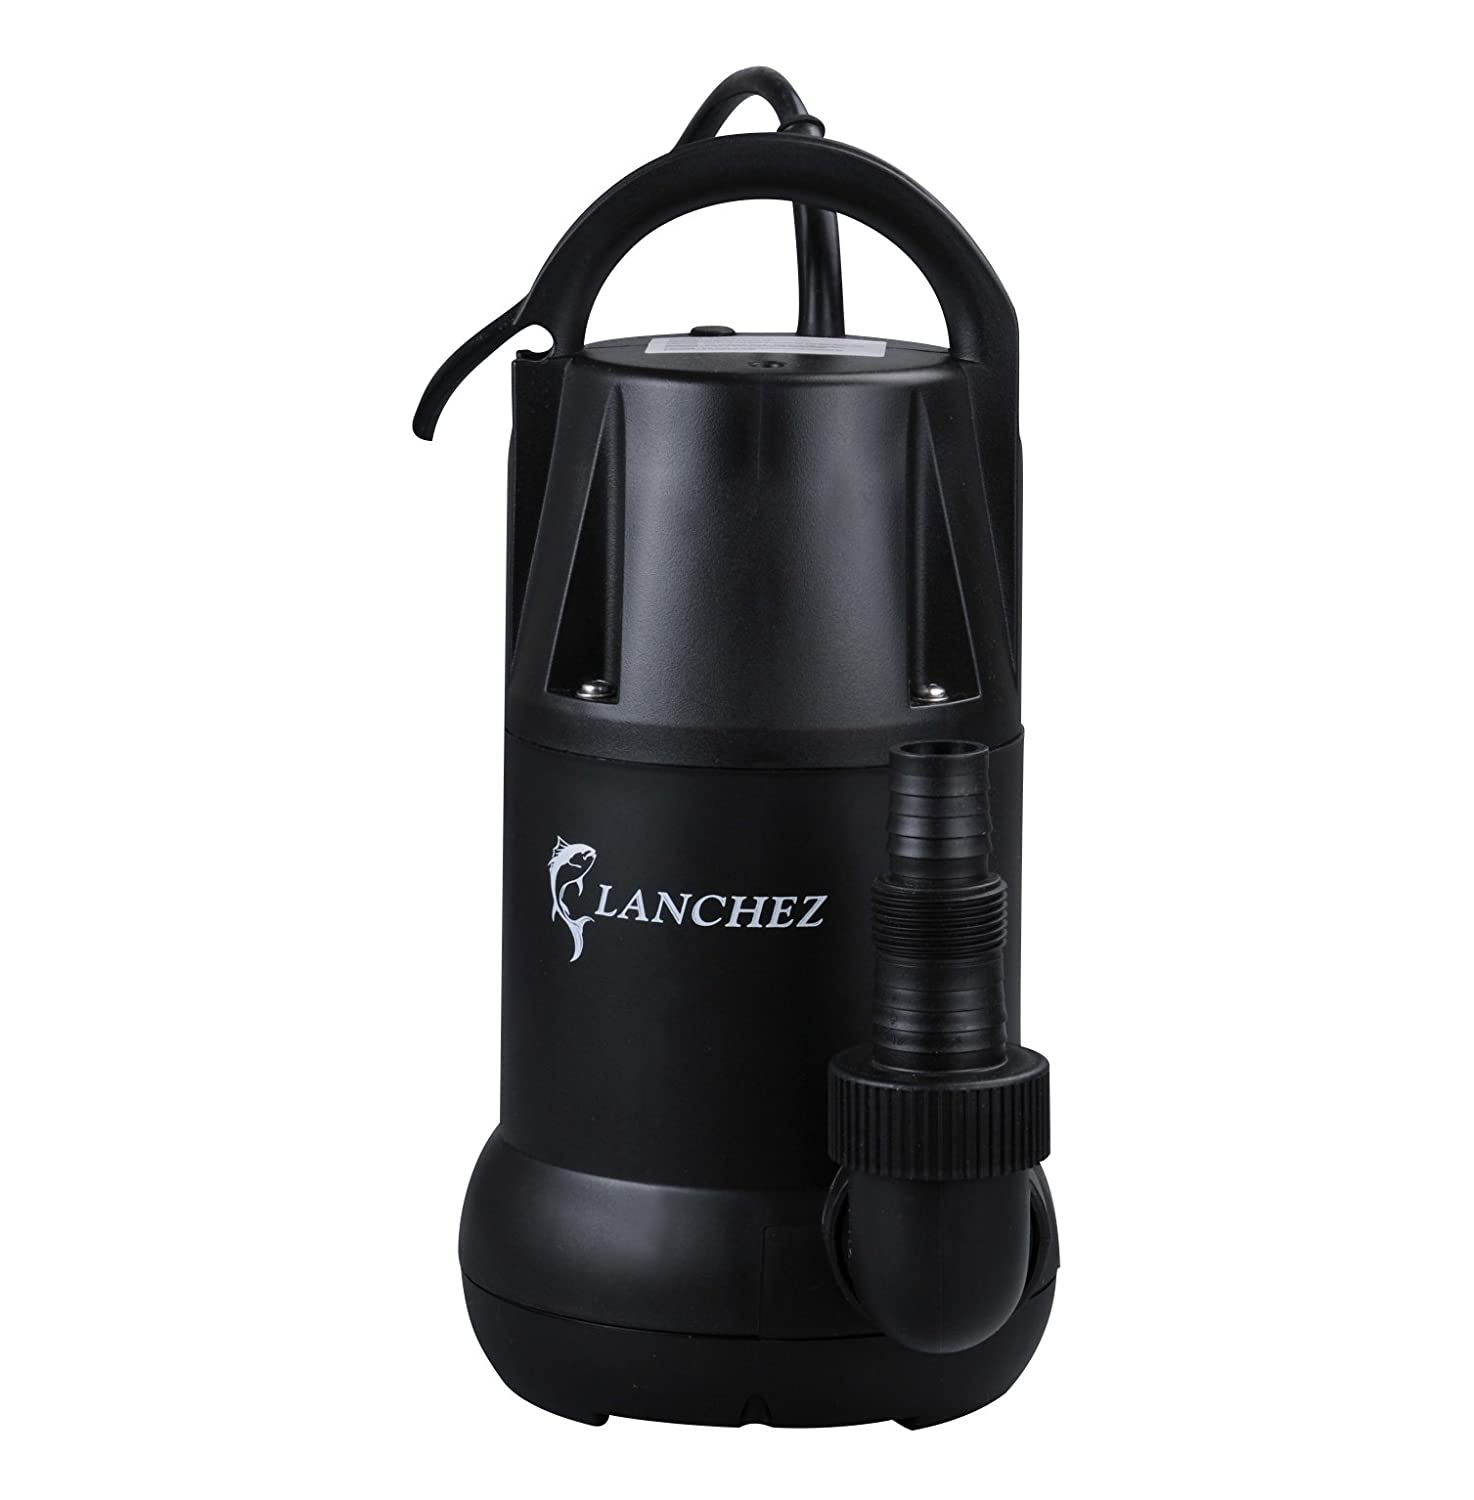 Lanchez Q7503 1/2 HP Multi-Purpose Electric Thermoplastic Submersible Utility Water Pump for Clean Water